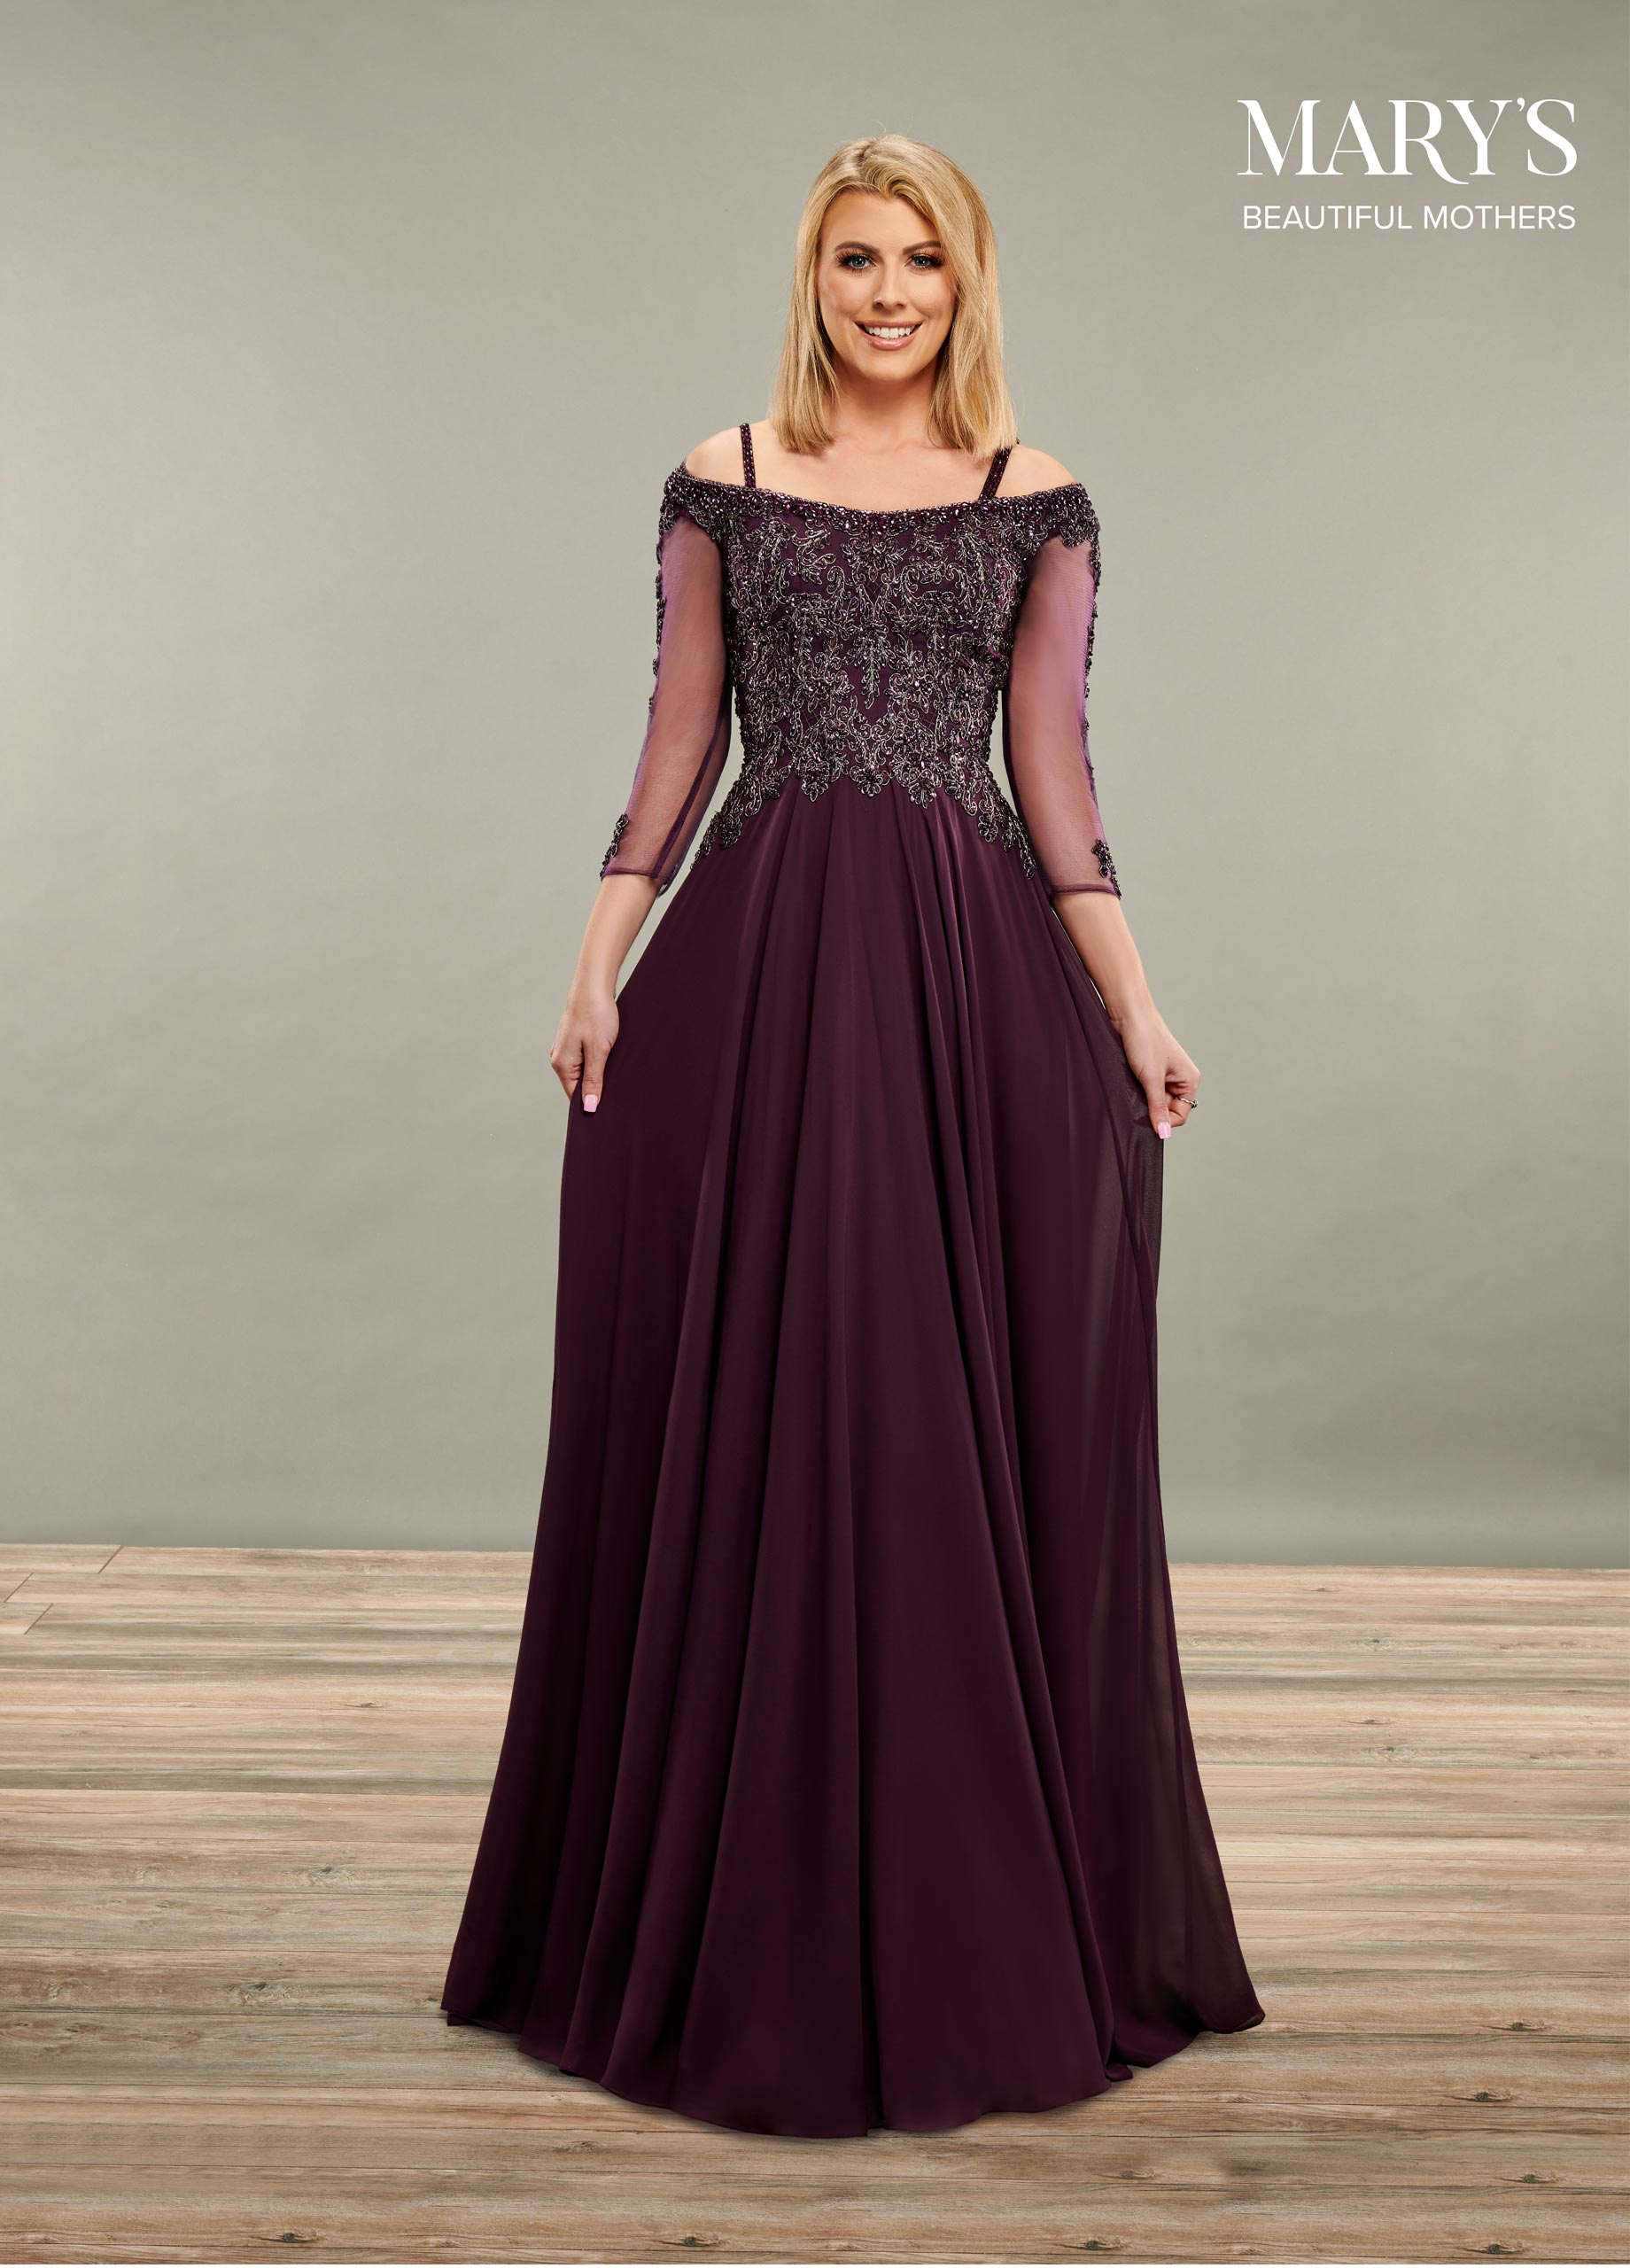 Mother Of The Bride Dresses | Beautiful Mothers | Style - MB8086